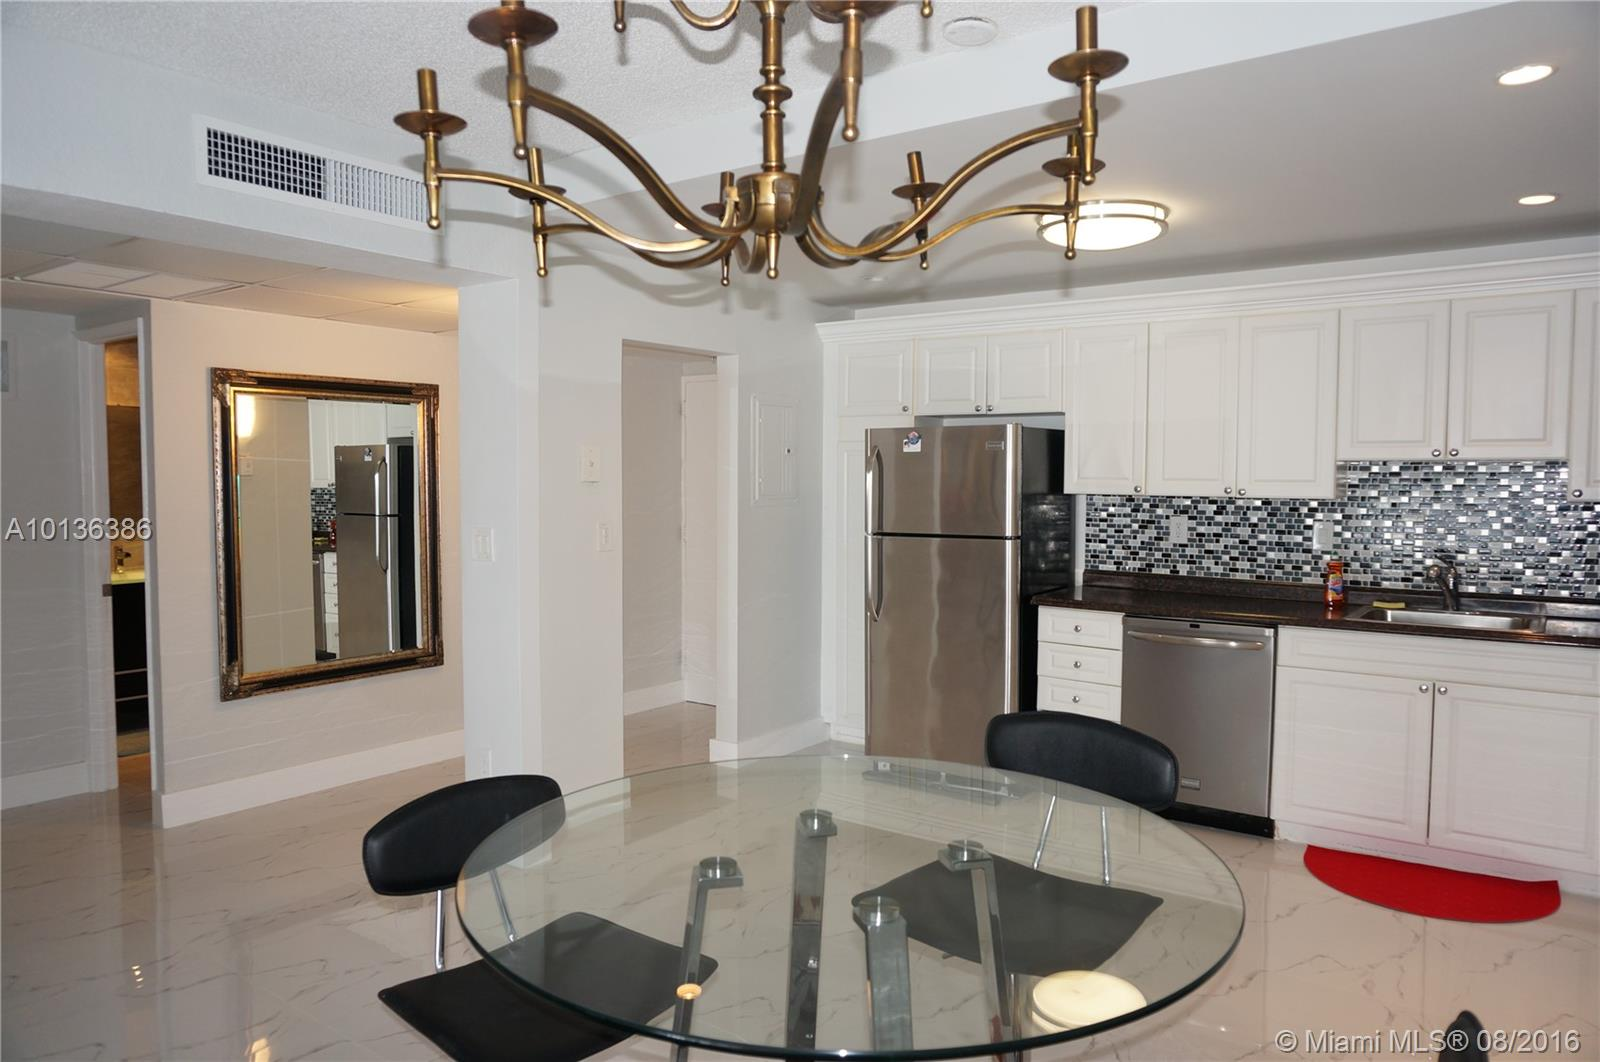 19370 Collins Av Seasonal # 1417, Sunny Isles Beach FL 33160 - Photo 1